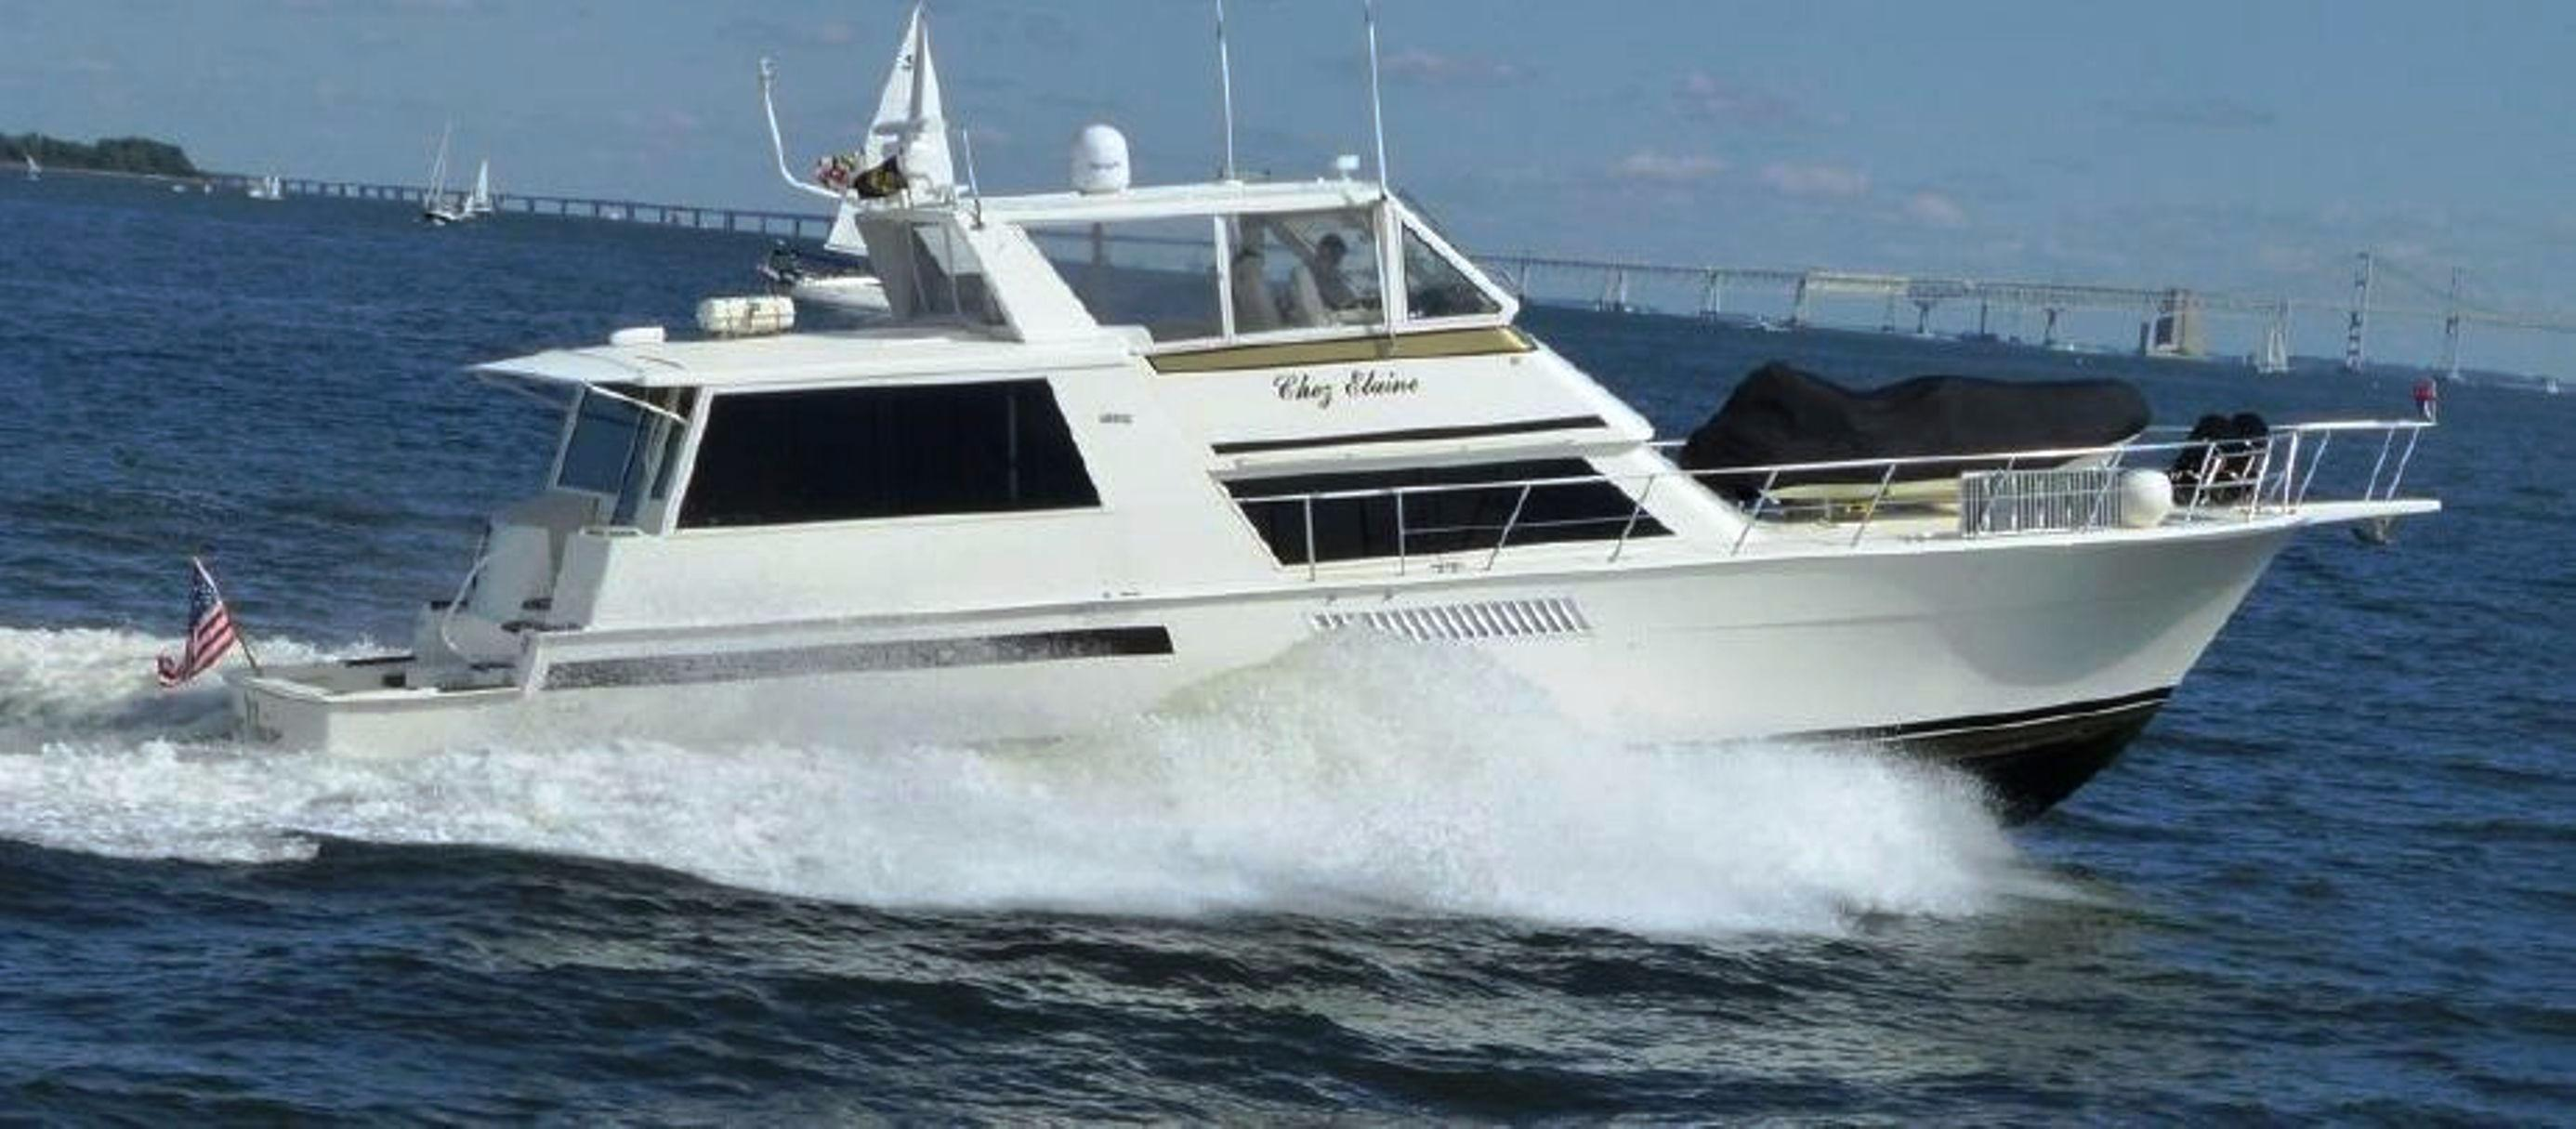 60 viking yachts 1996 for sale in ft lauderdale florida for 60 viking motor yacht for sale